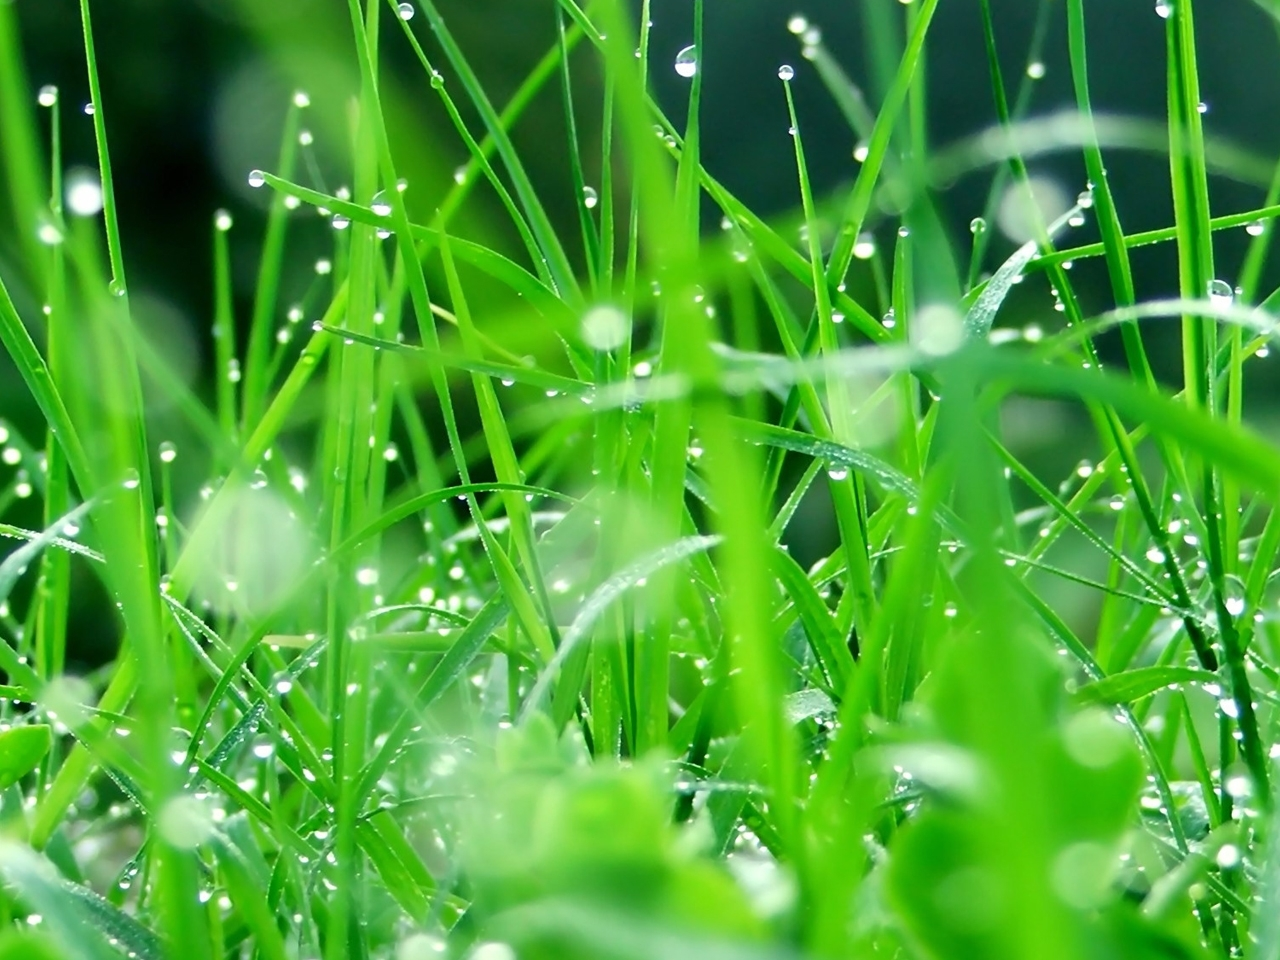 40749 download wallpaper Grass, Pictures screensavers and pictures for free